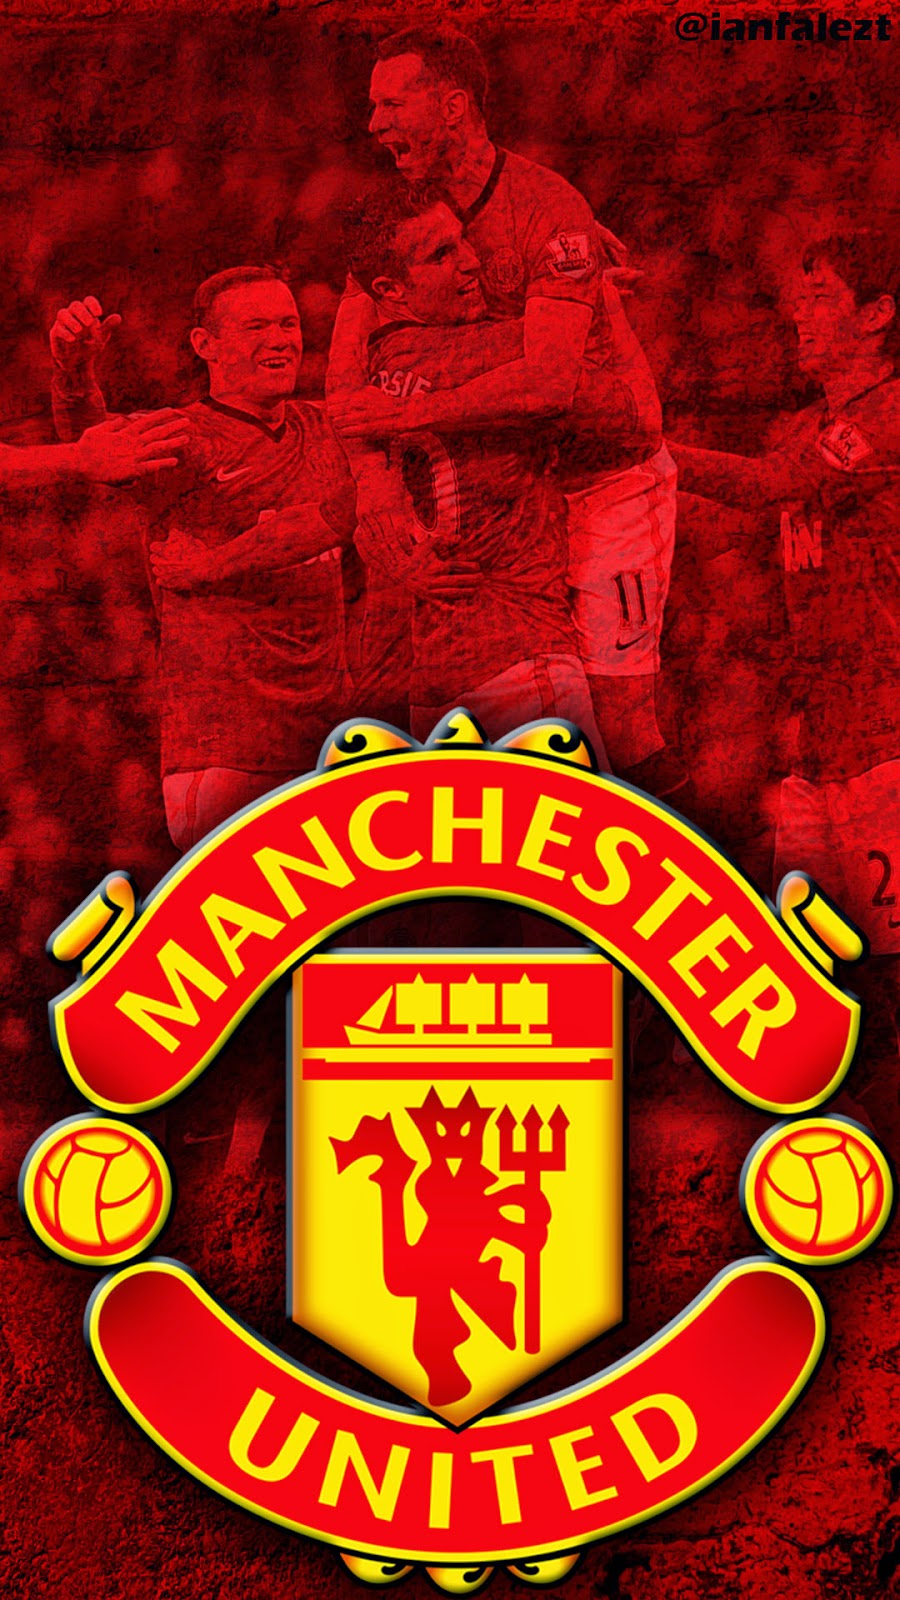 45 ] Awesome Manchester United Wallpapers On WallpaperSafari